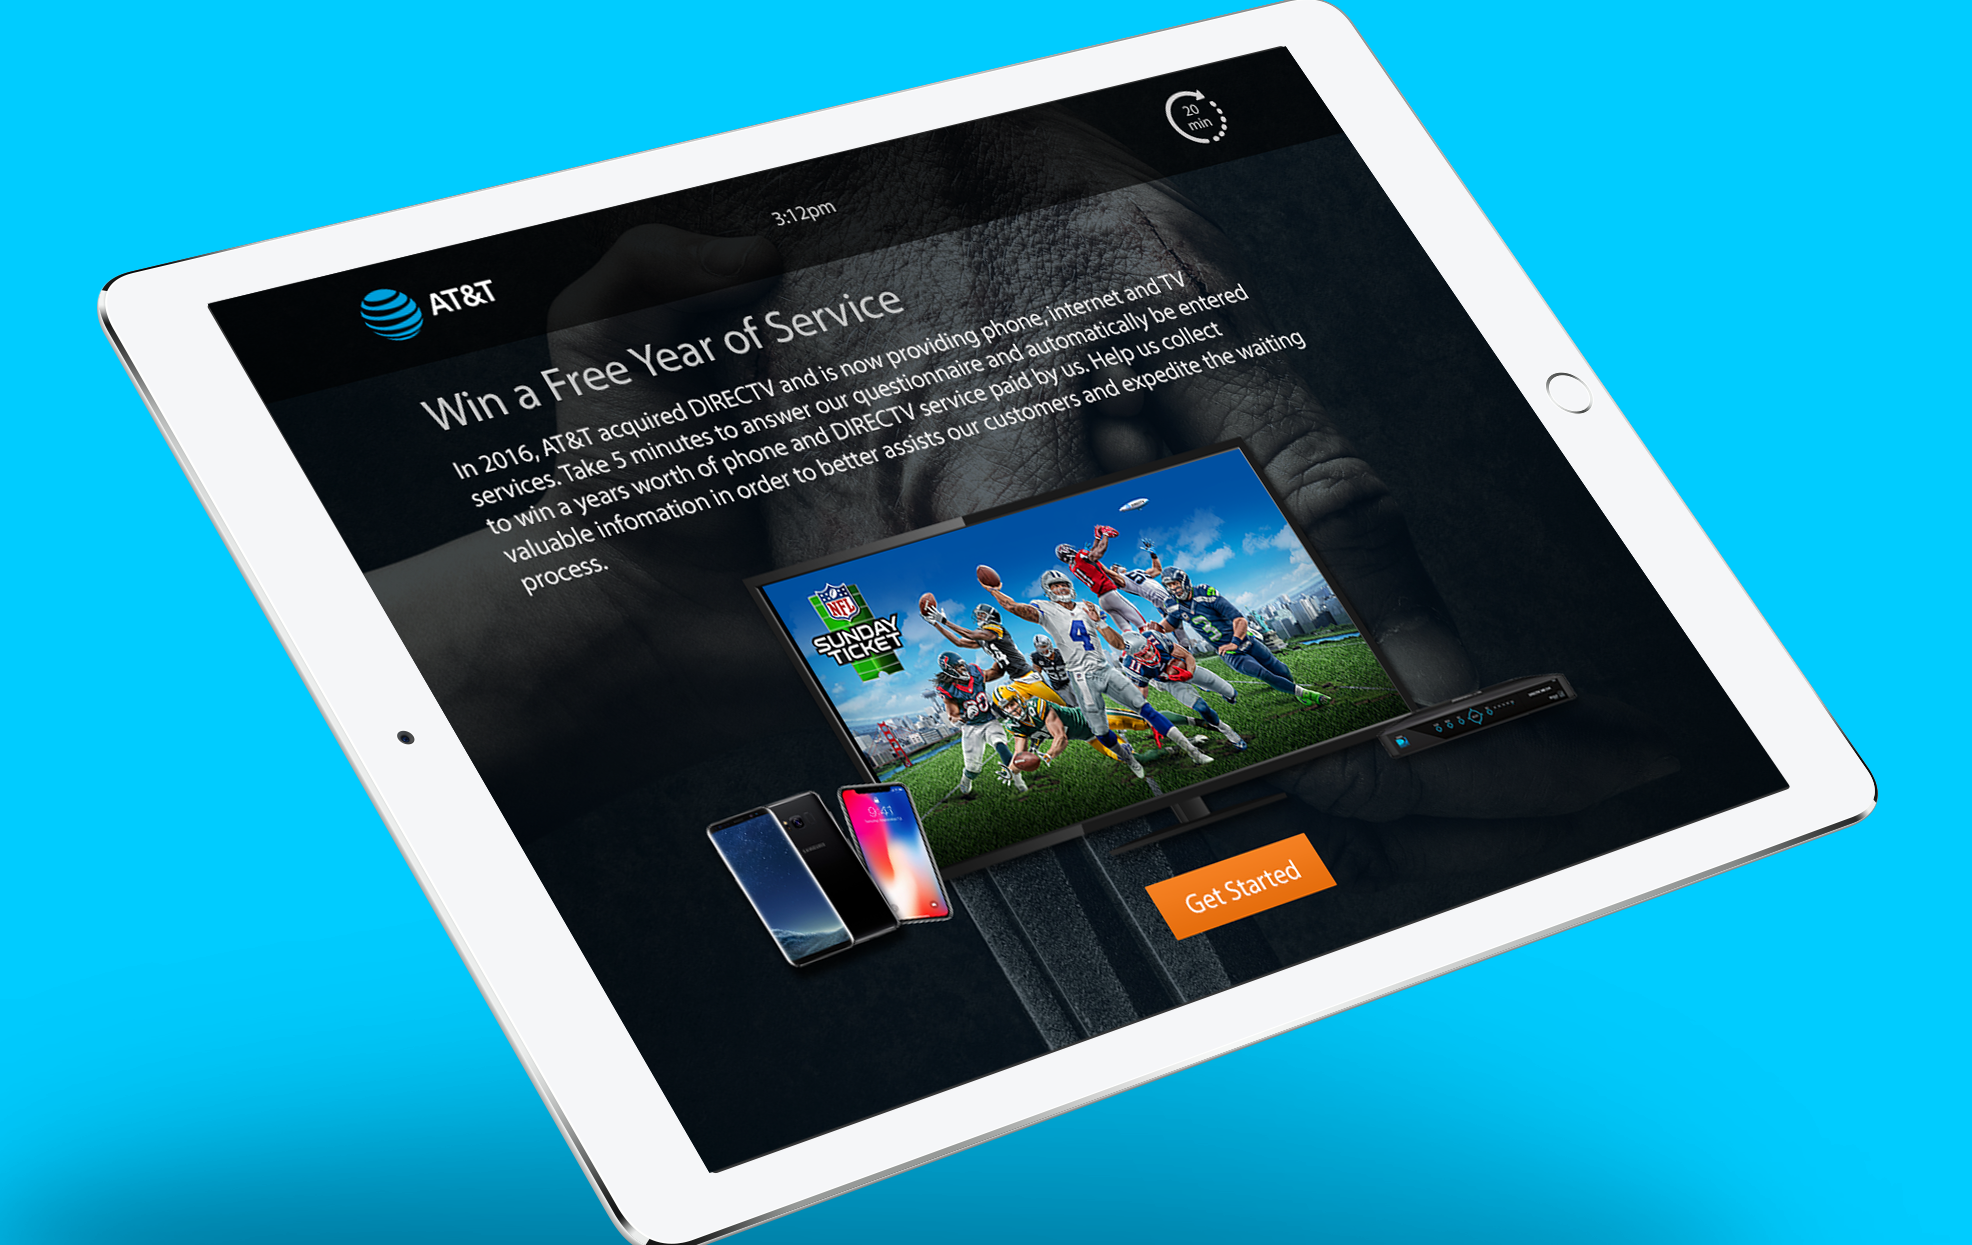 In-store Experience Redesign - A survey app that will help provide a better in-store experience for AT&T customers as well as inform them about DIRECTV products.